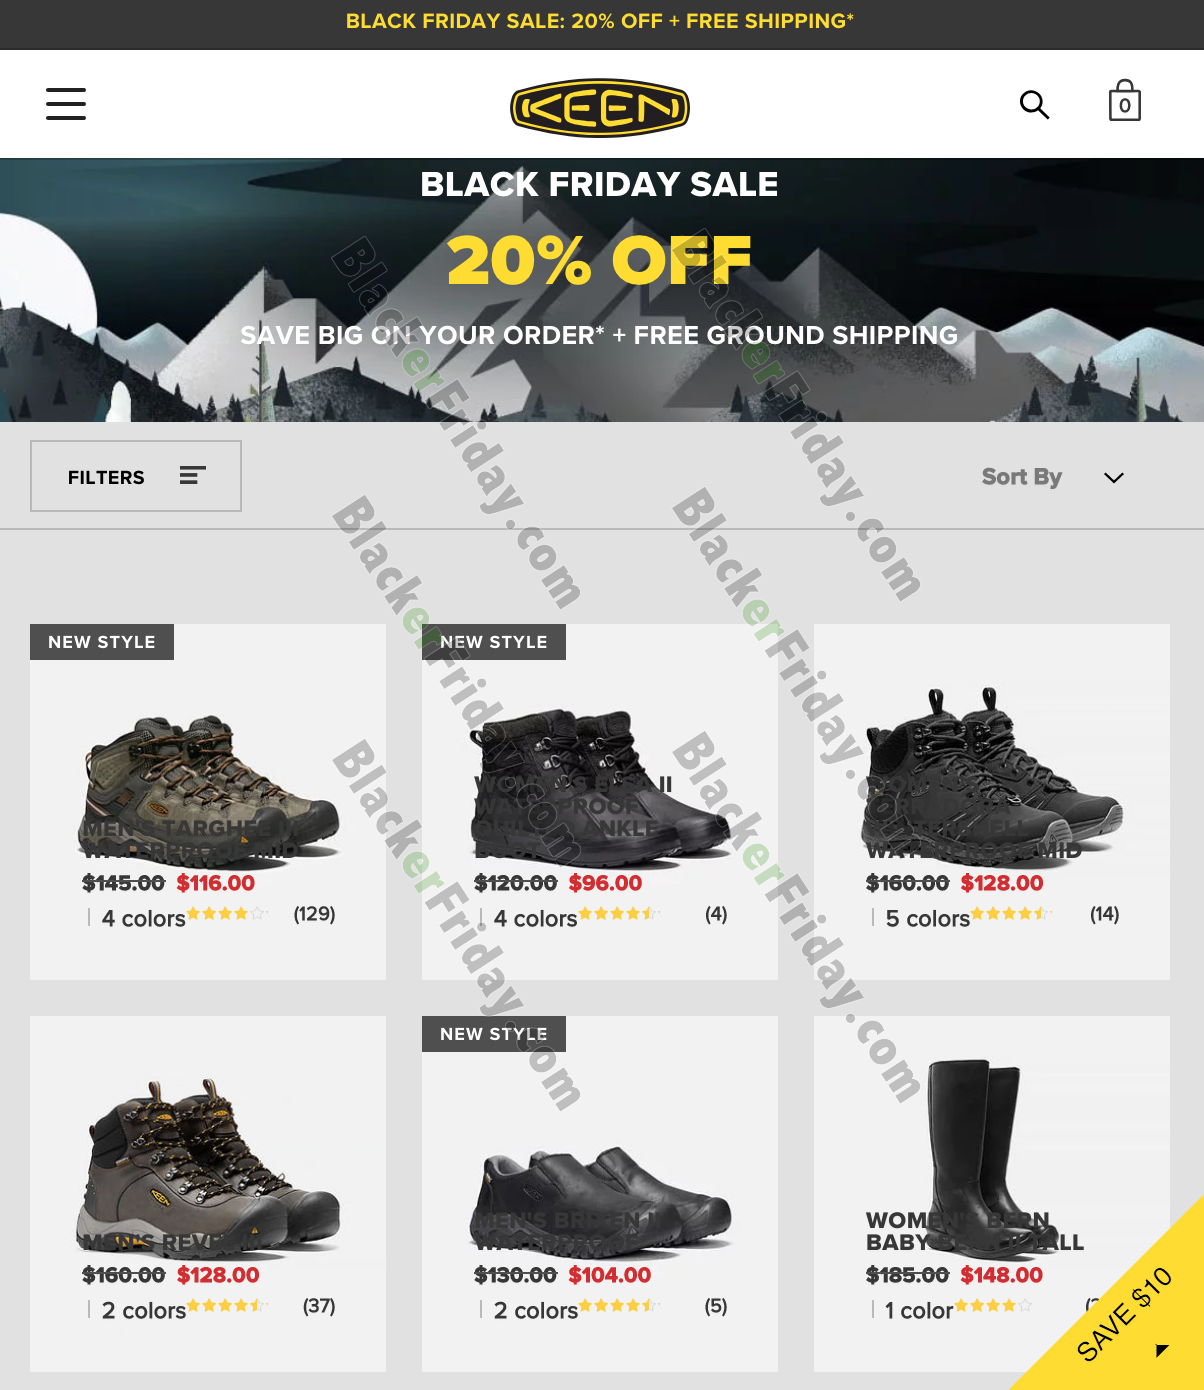 Keen Black Friday 2020 Sale - What to